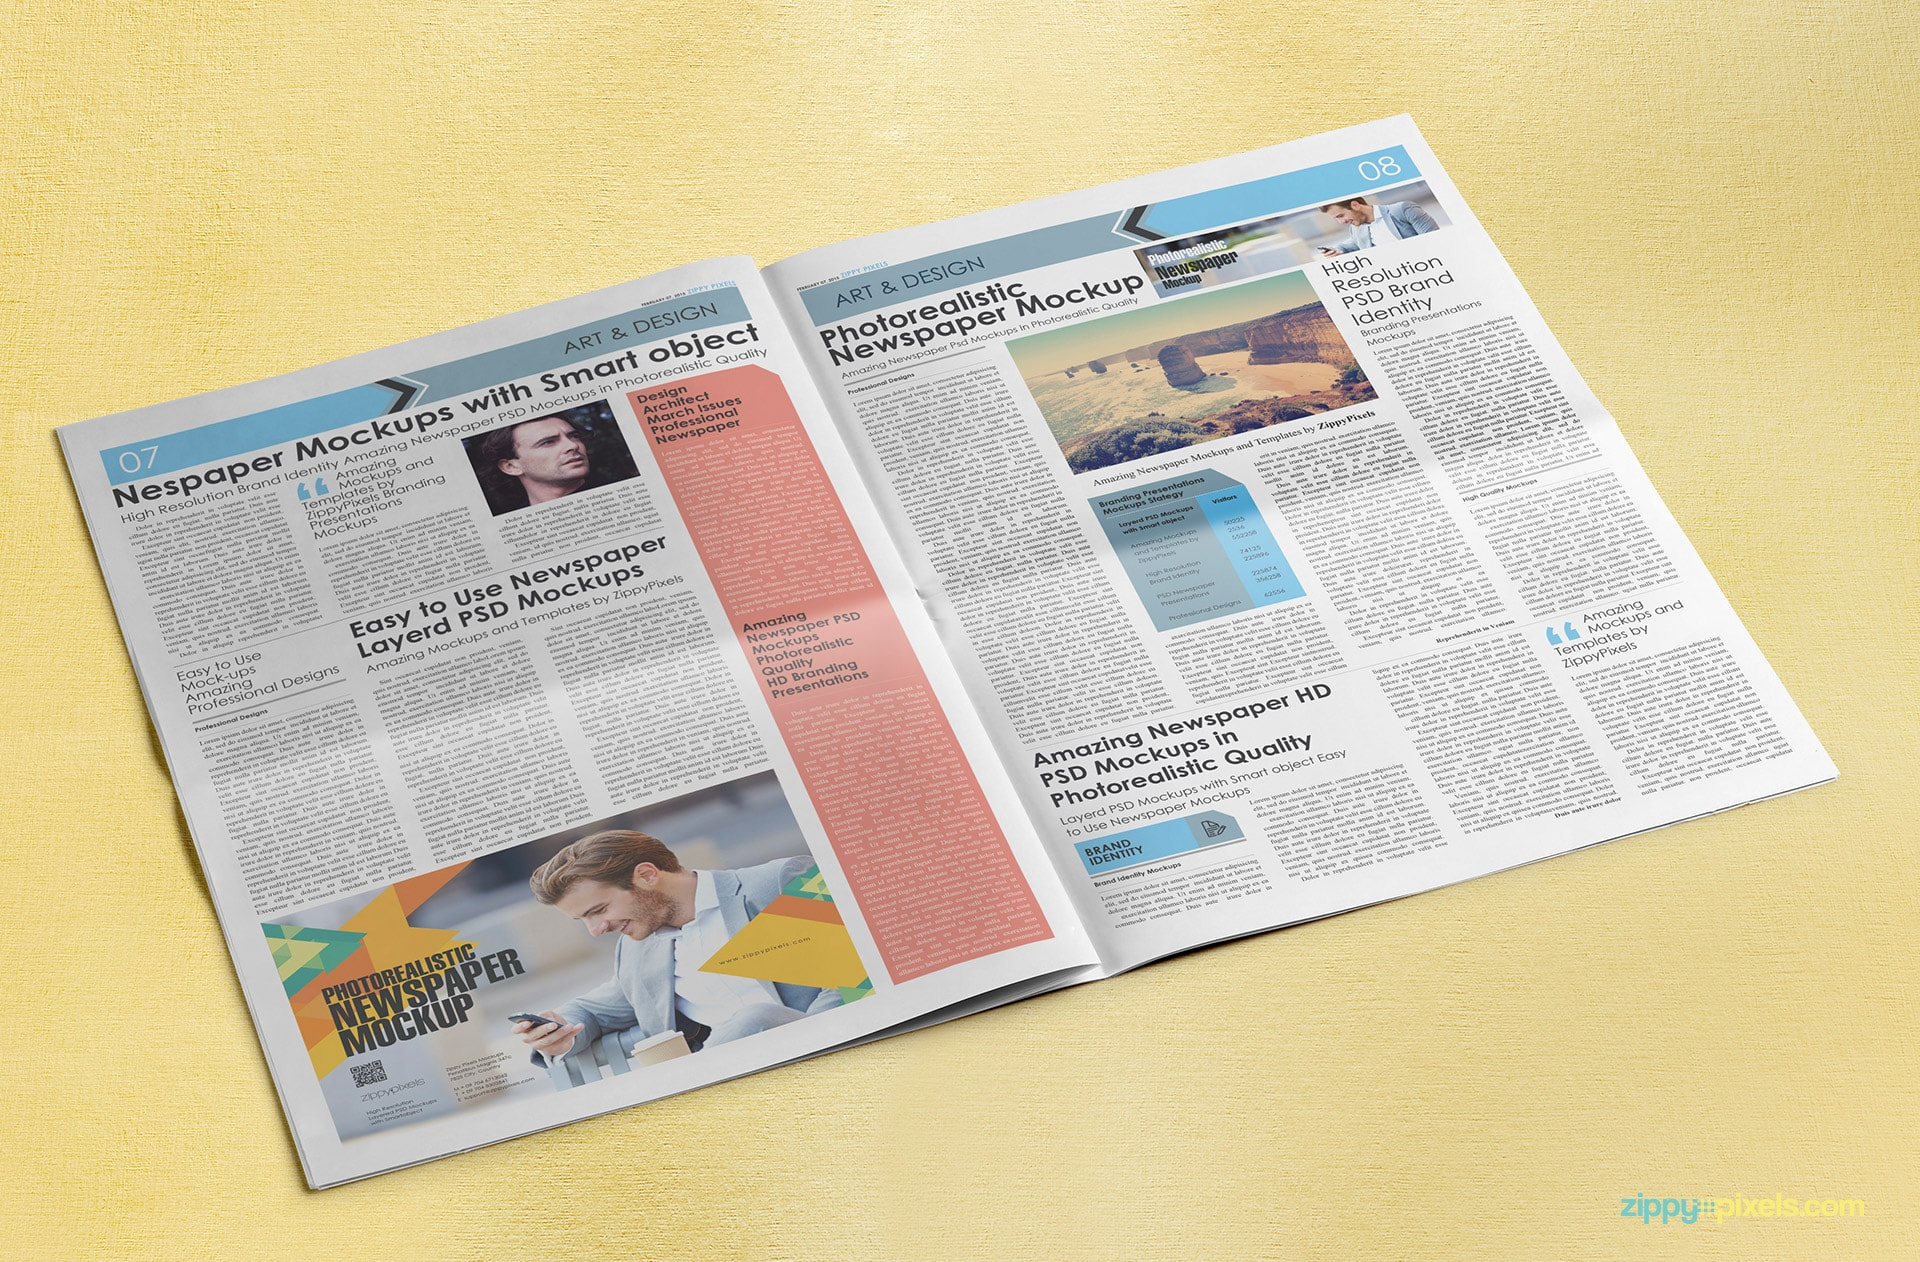 Full spread compact/tabloid newspaper mockup with a 3 column ⅓ page advertisement display